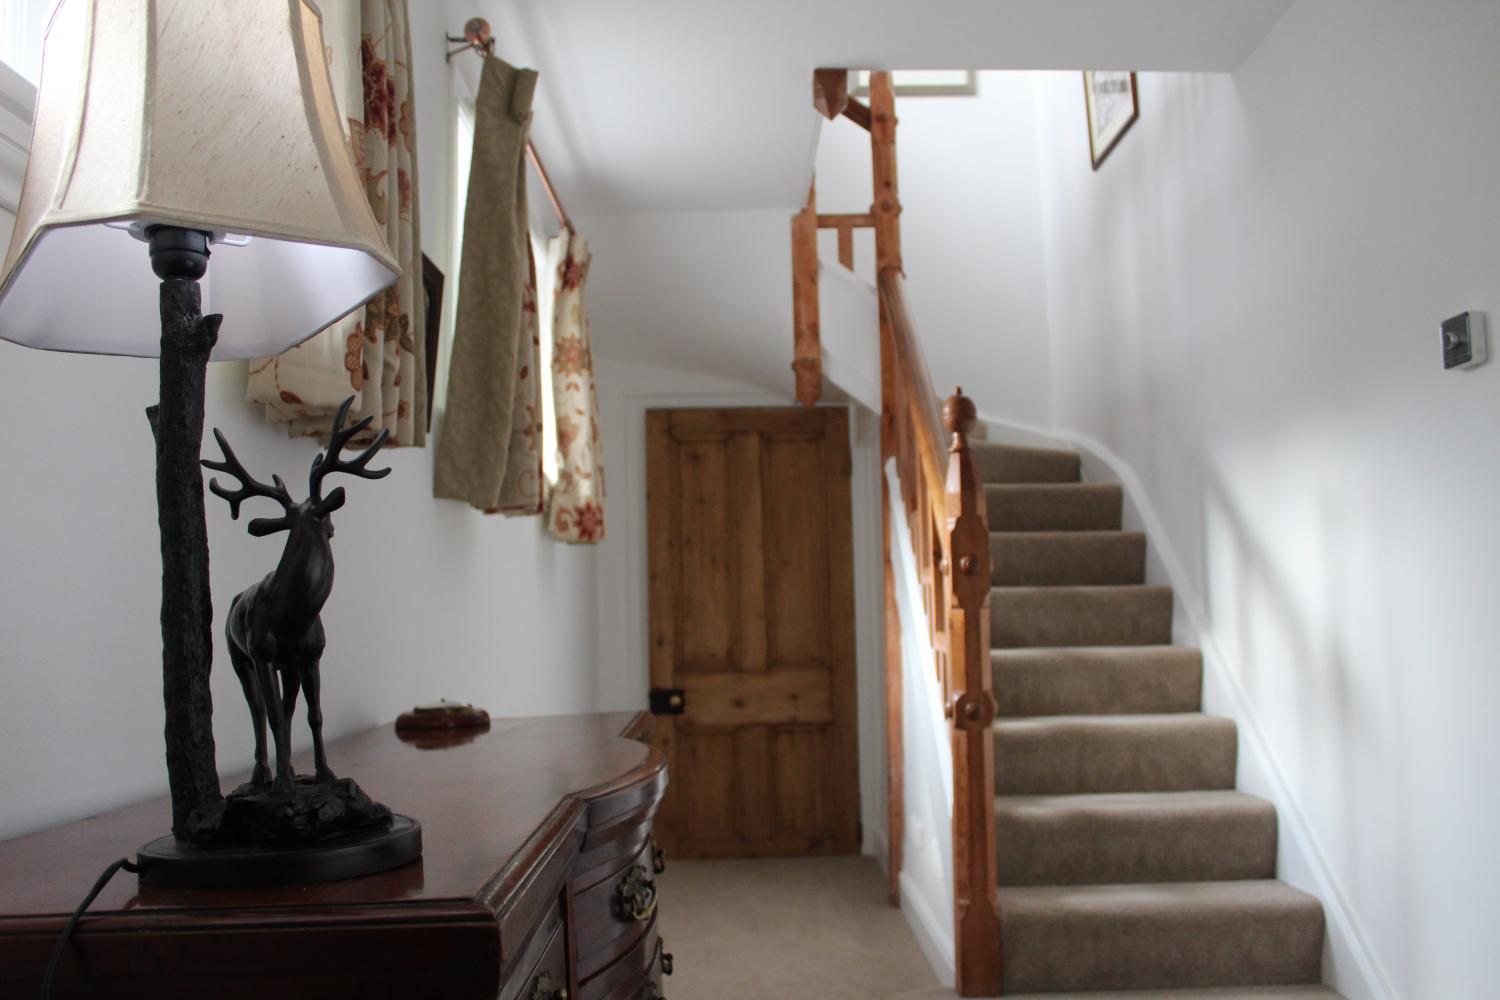 Bowness hallway and stairs to first floor